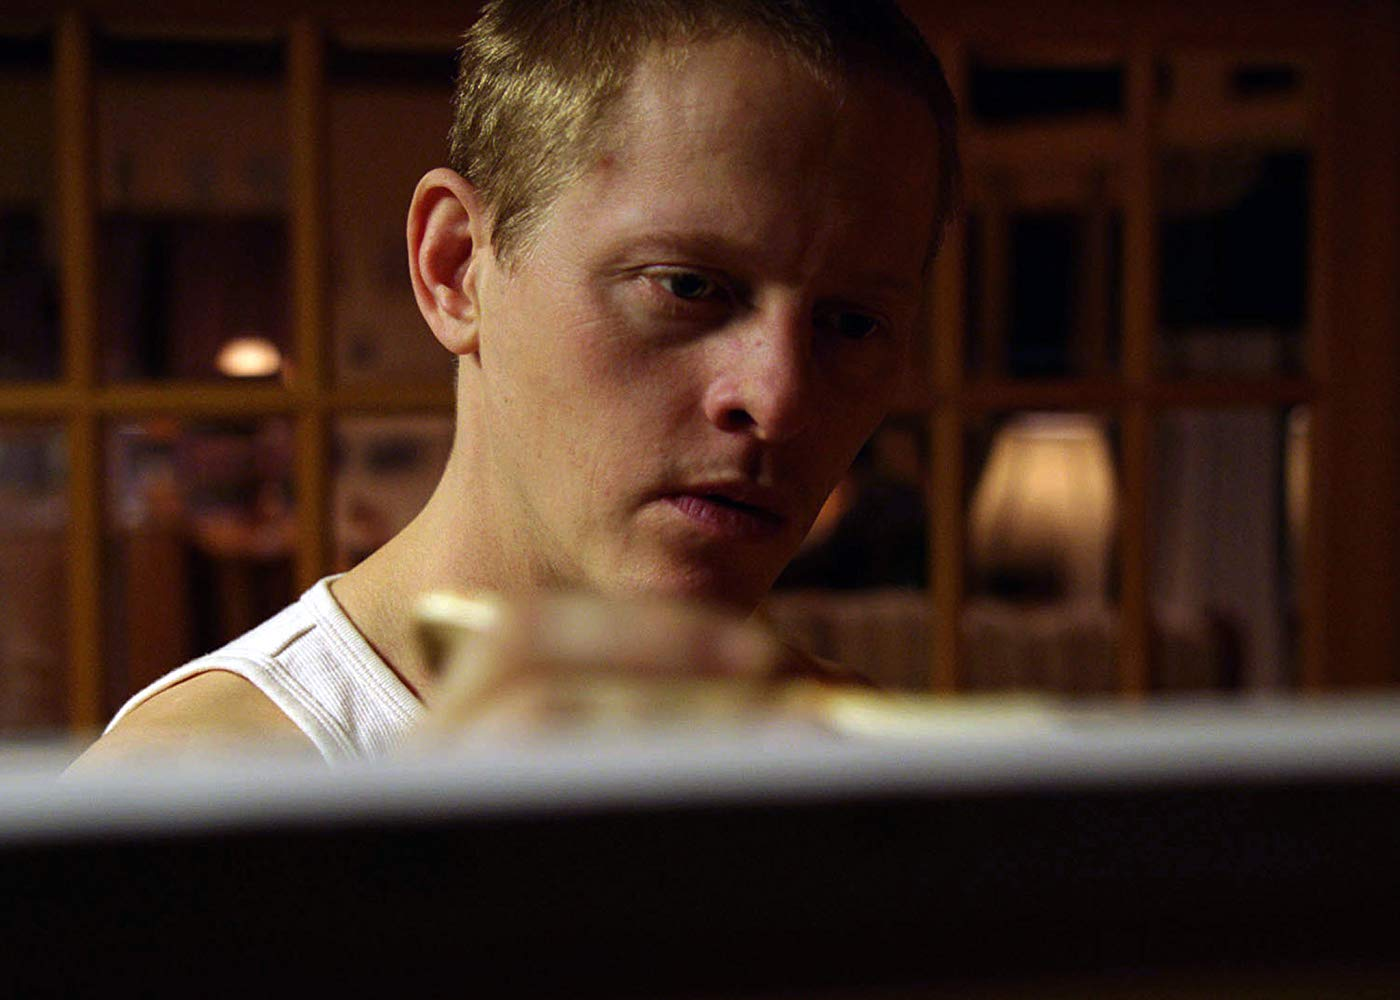 Artist Thure Lindhardt gains inspiration from dead bodies in Eddie the Sleepwalking Cannibal (2012)